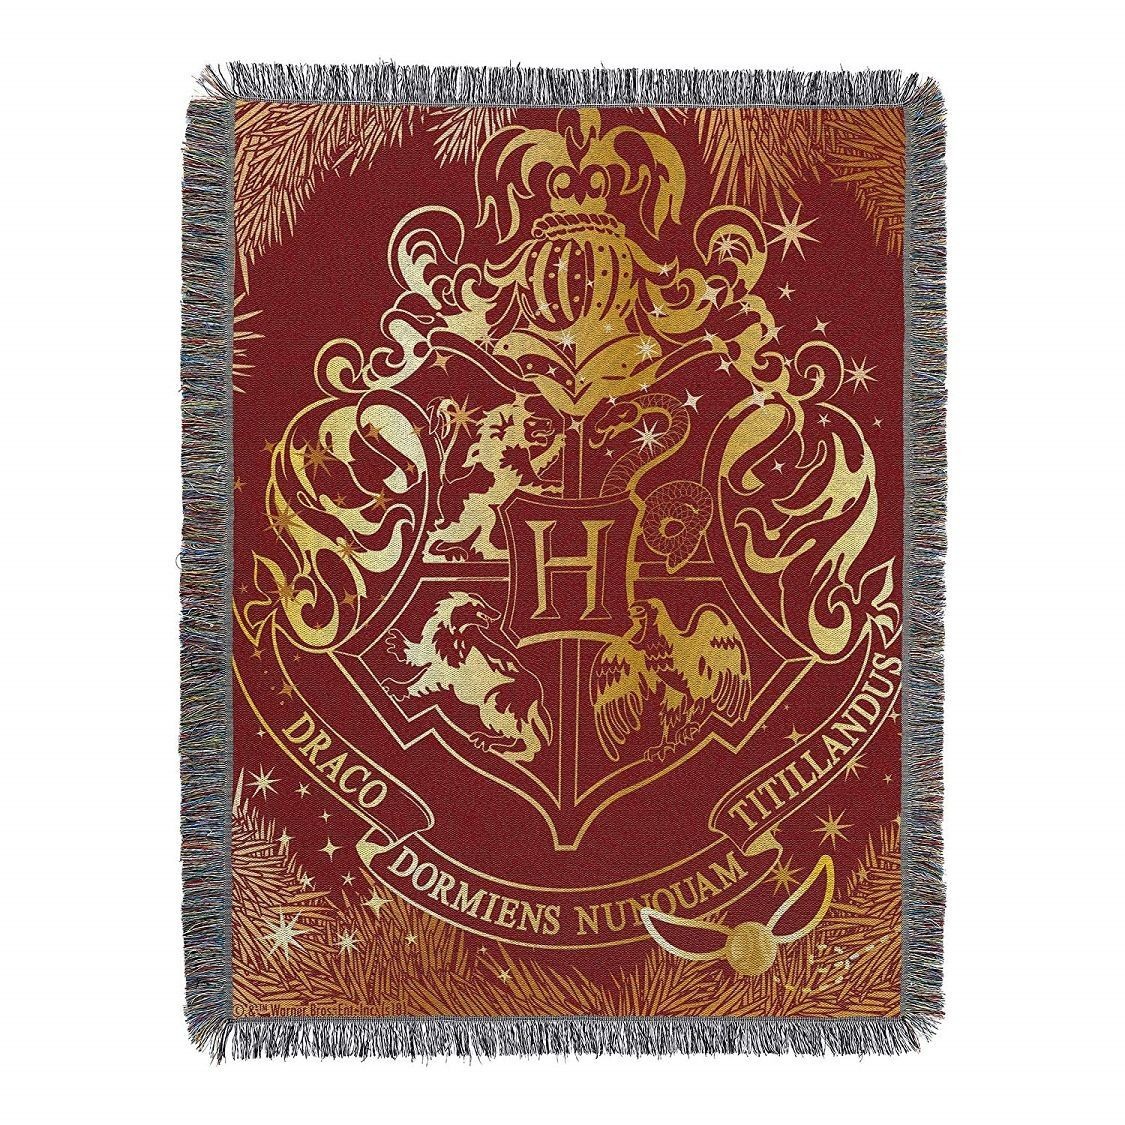 Hogwarts Yule Tapestry Throw Blanket: Harry Potter Gifts